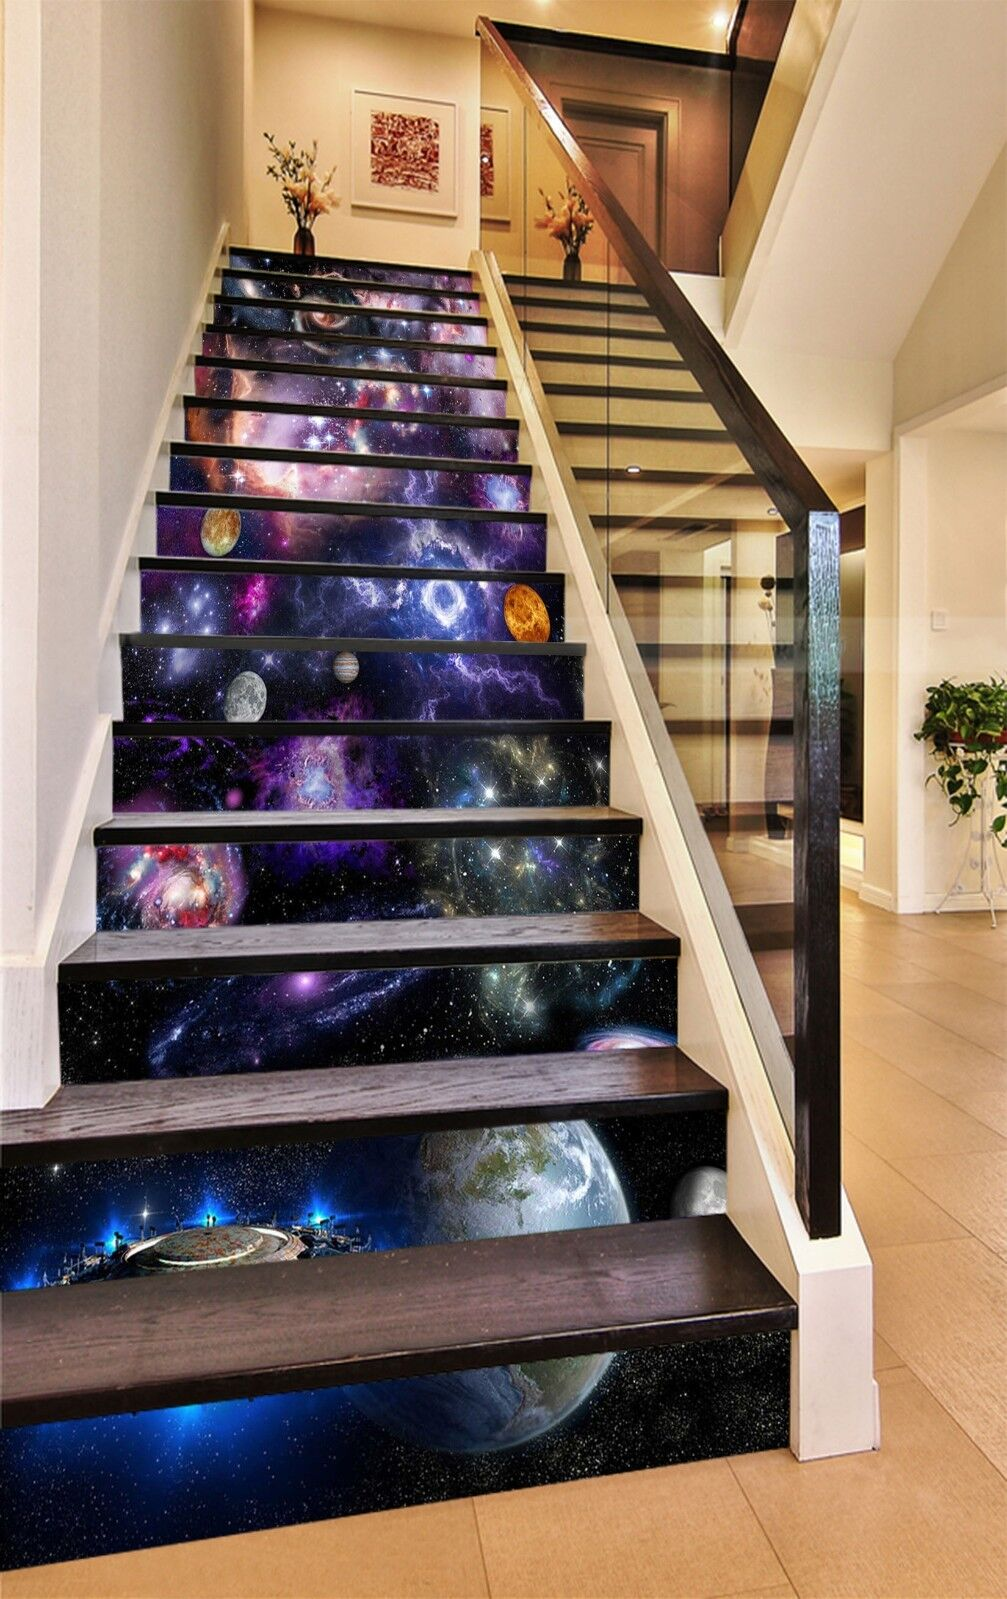 3D The Milky way 4 Stair Risers Decoration Photo Mural Vinyl Decal Wallpaper UK